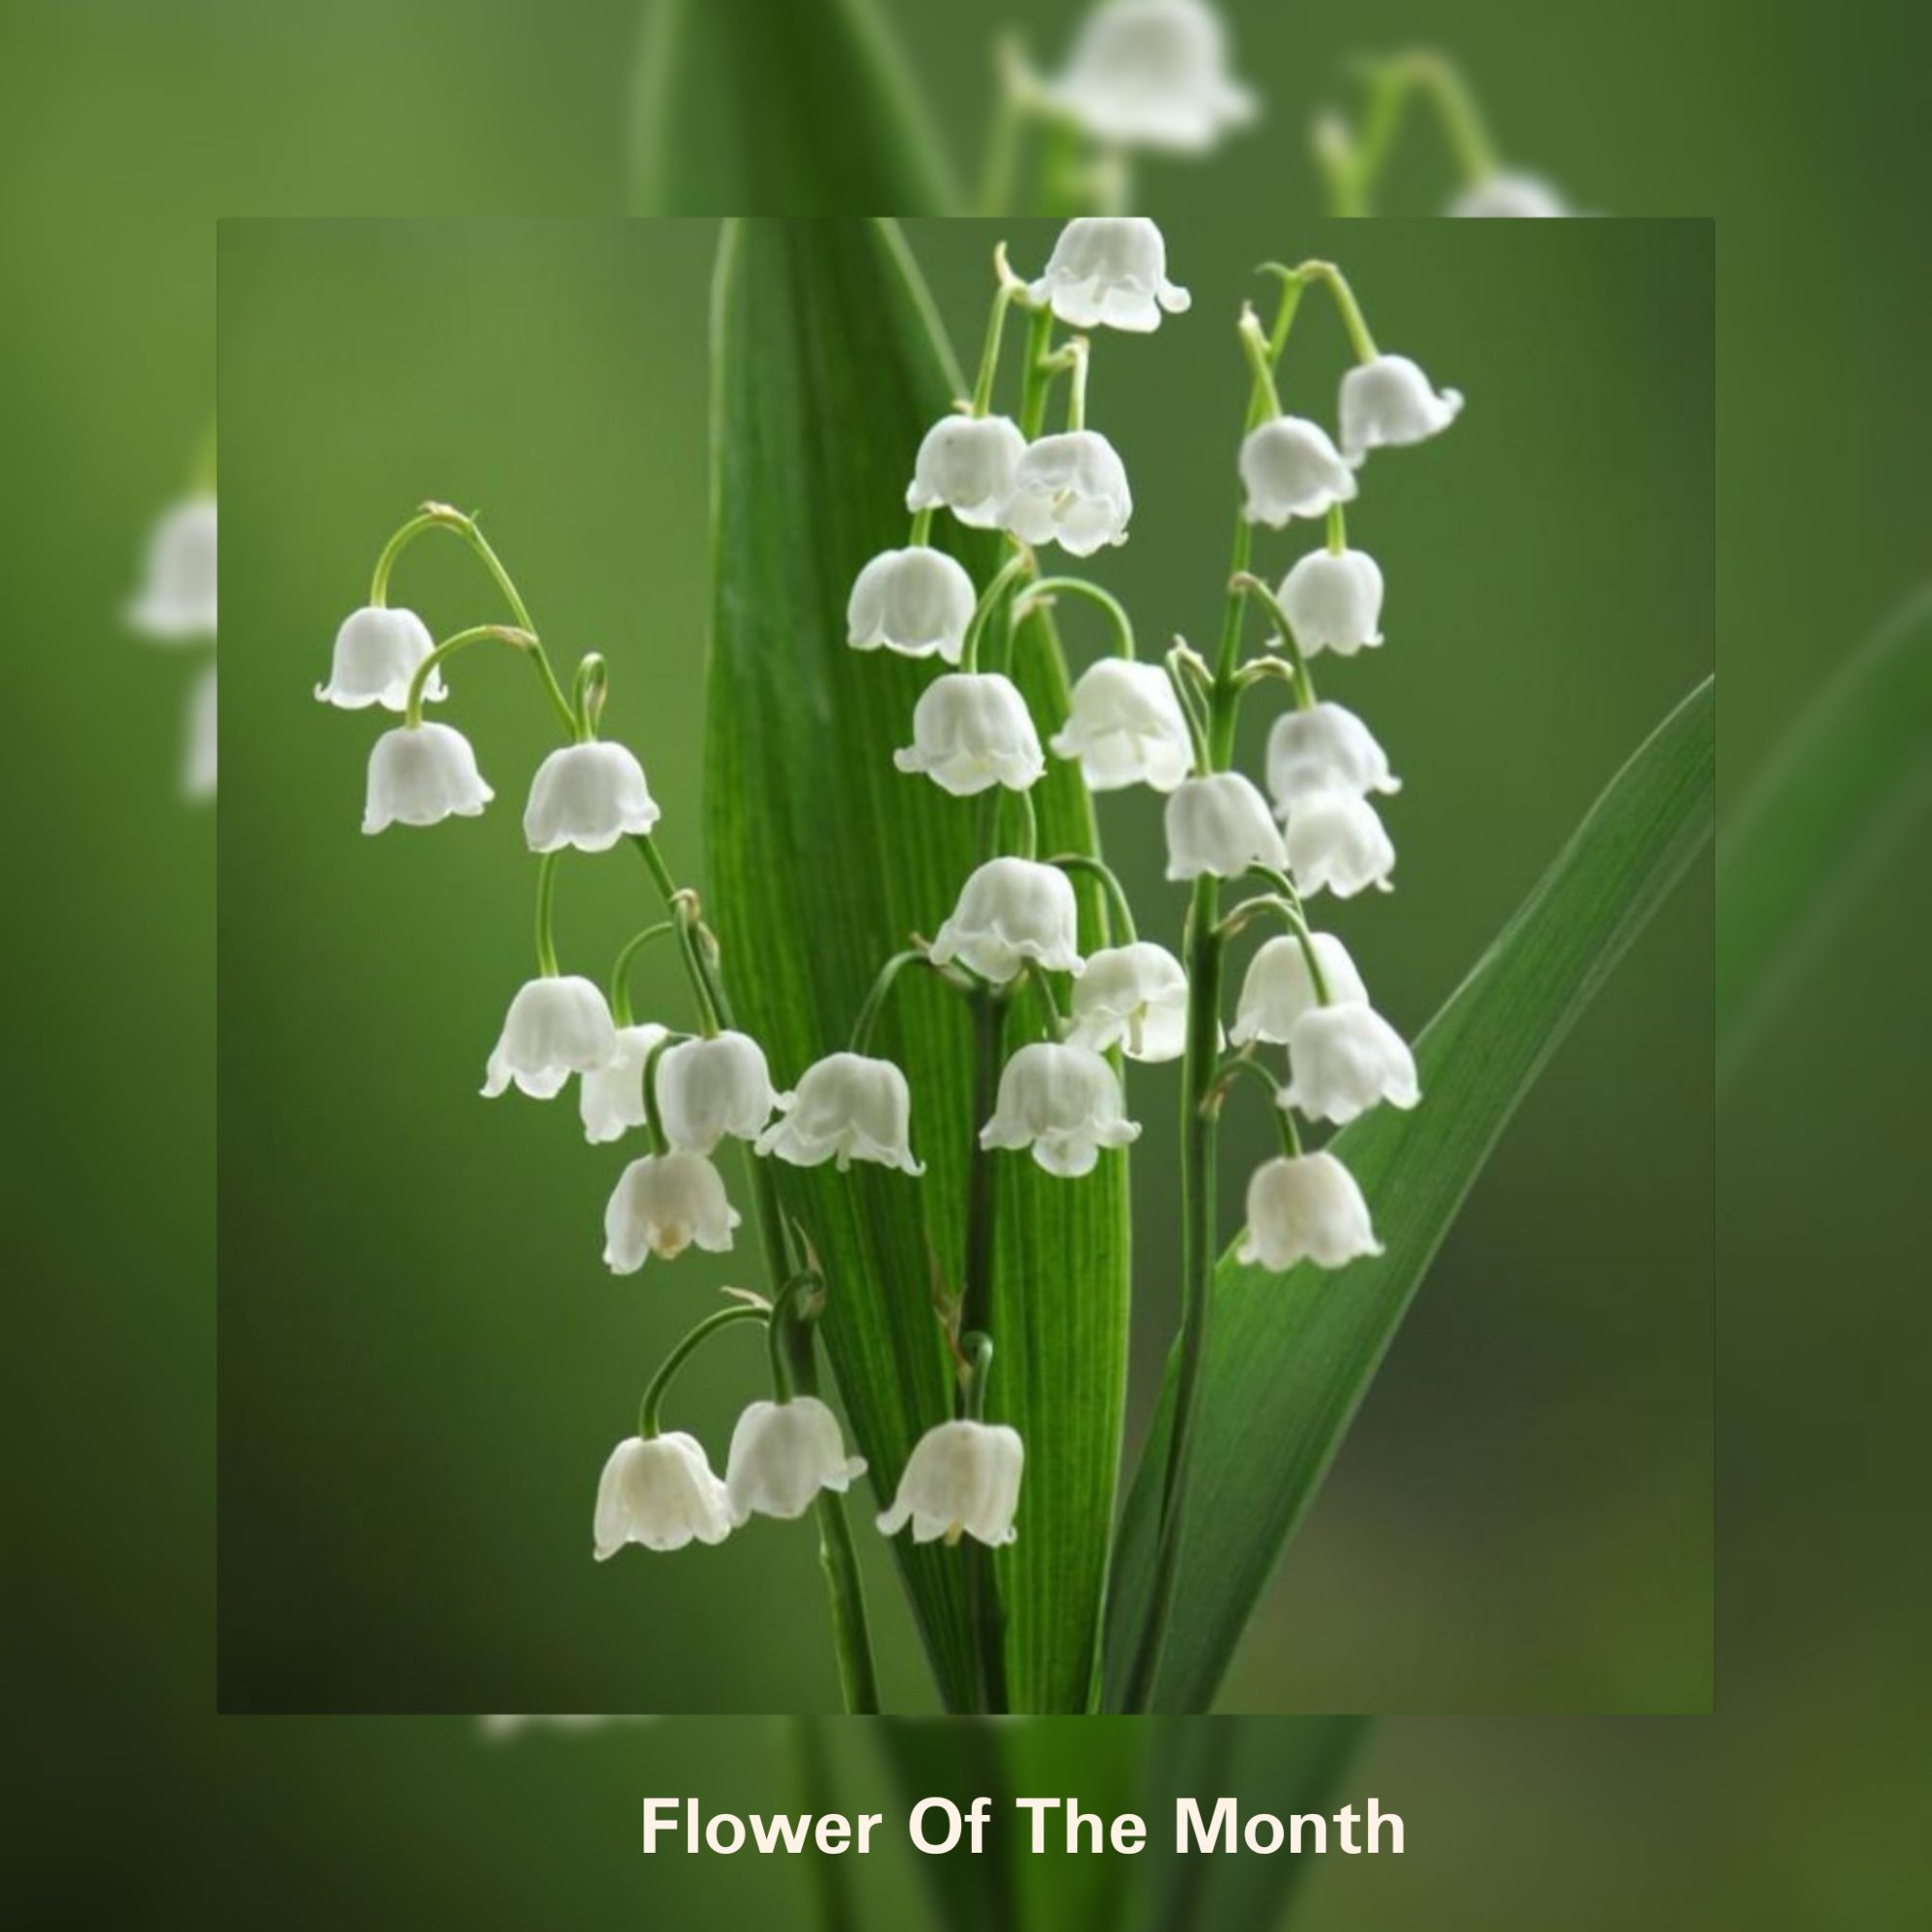 Flower Of The Month